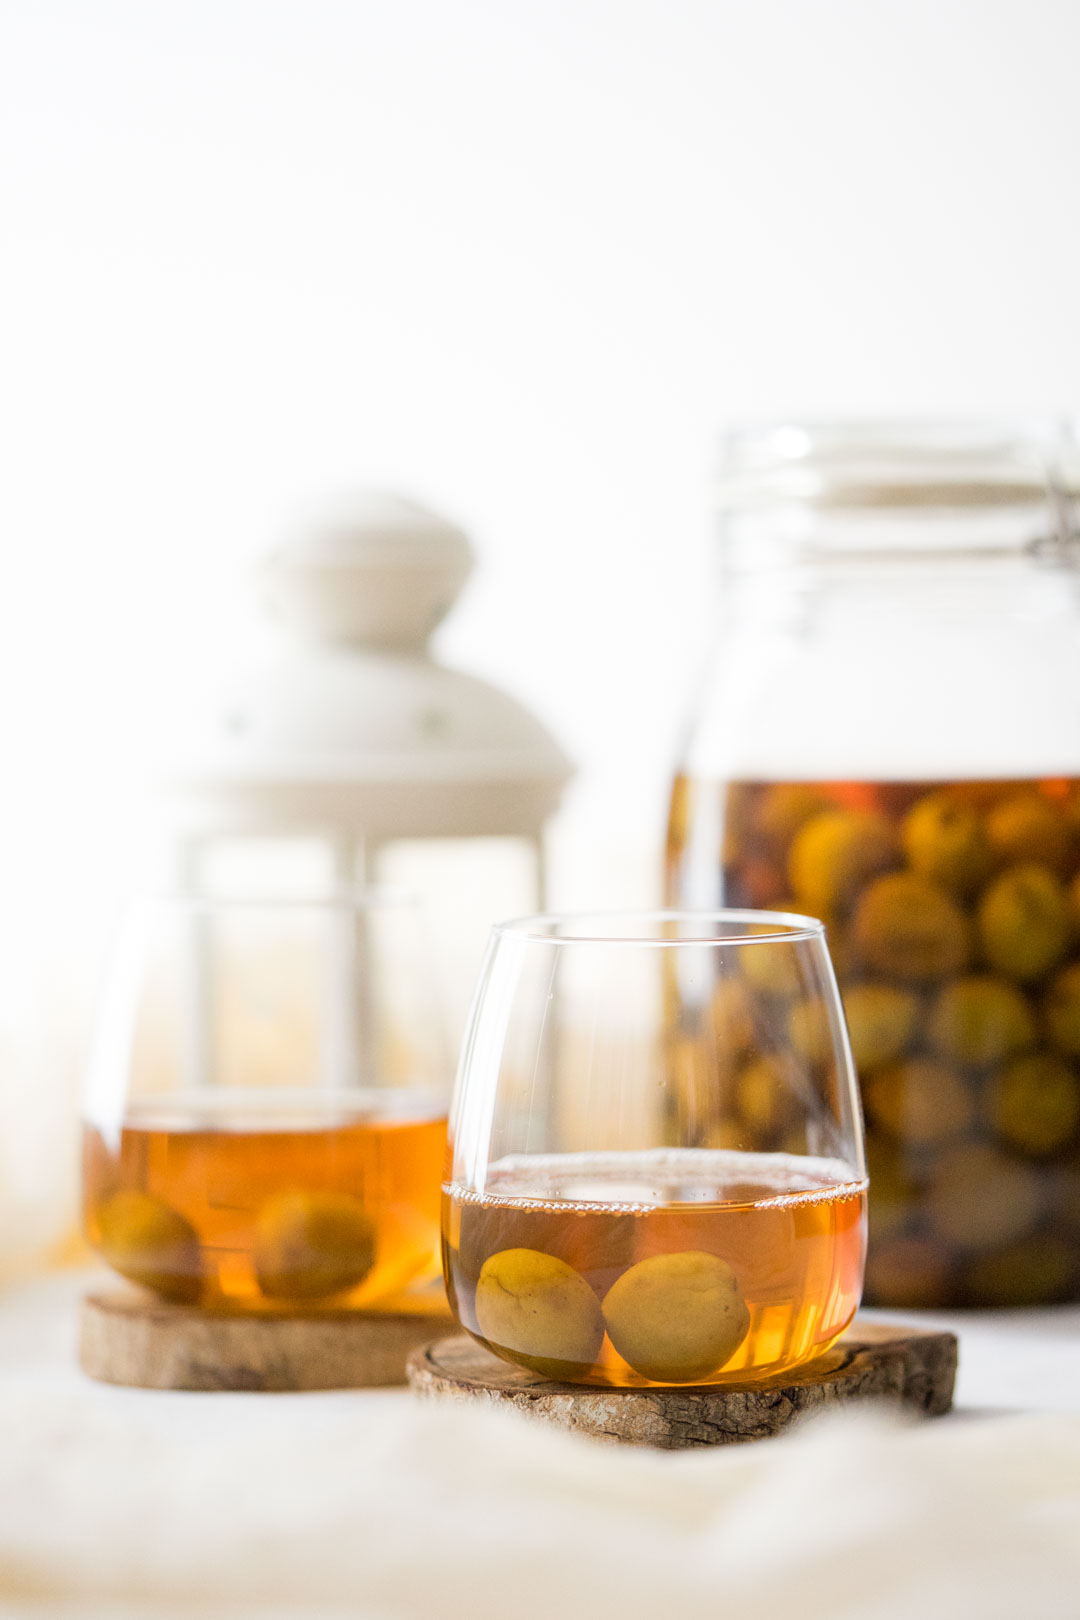 two glasses of umeshu or Japanese plum wine